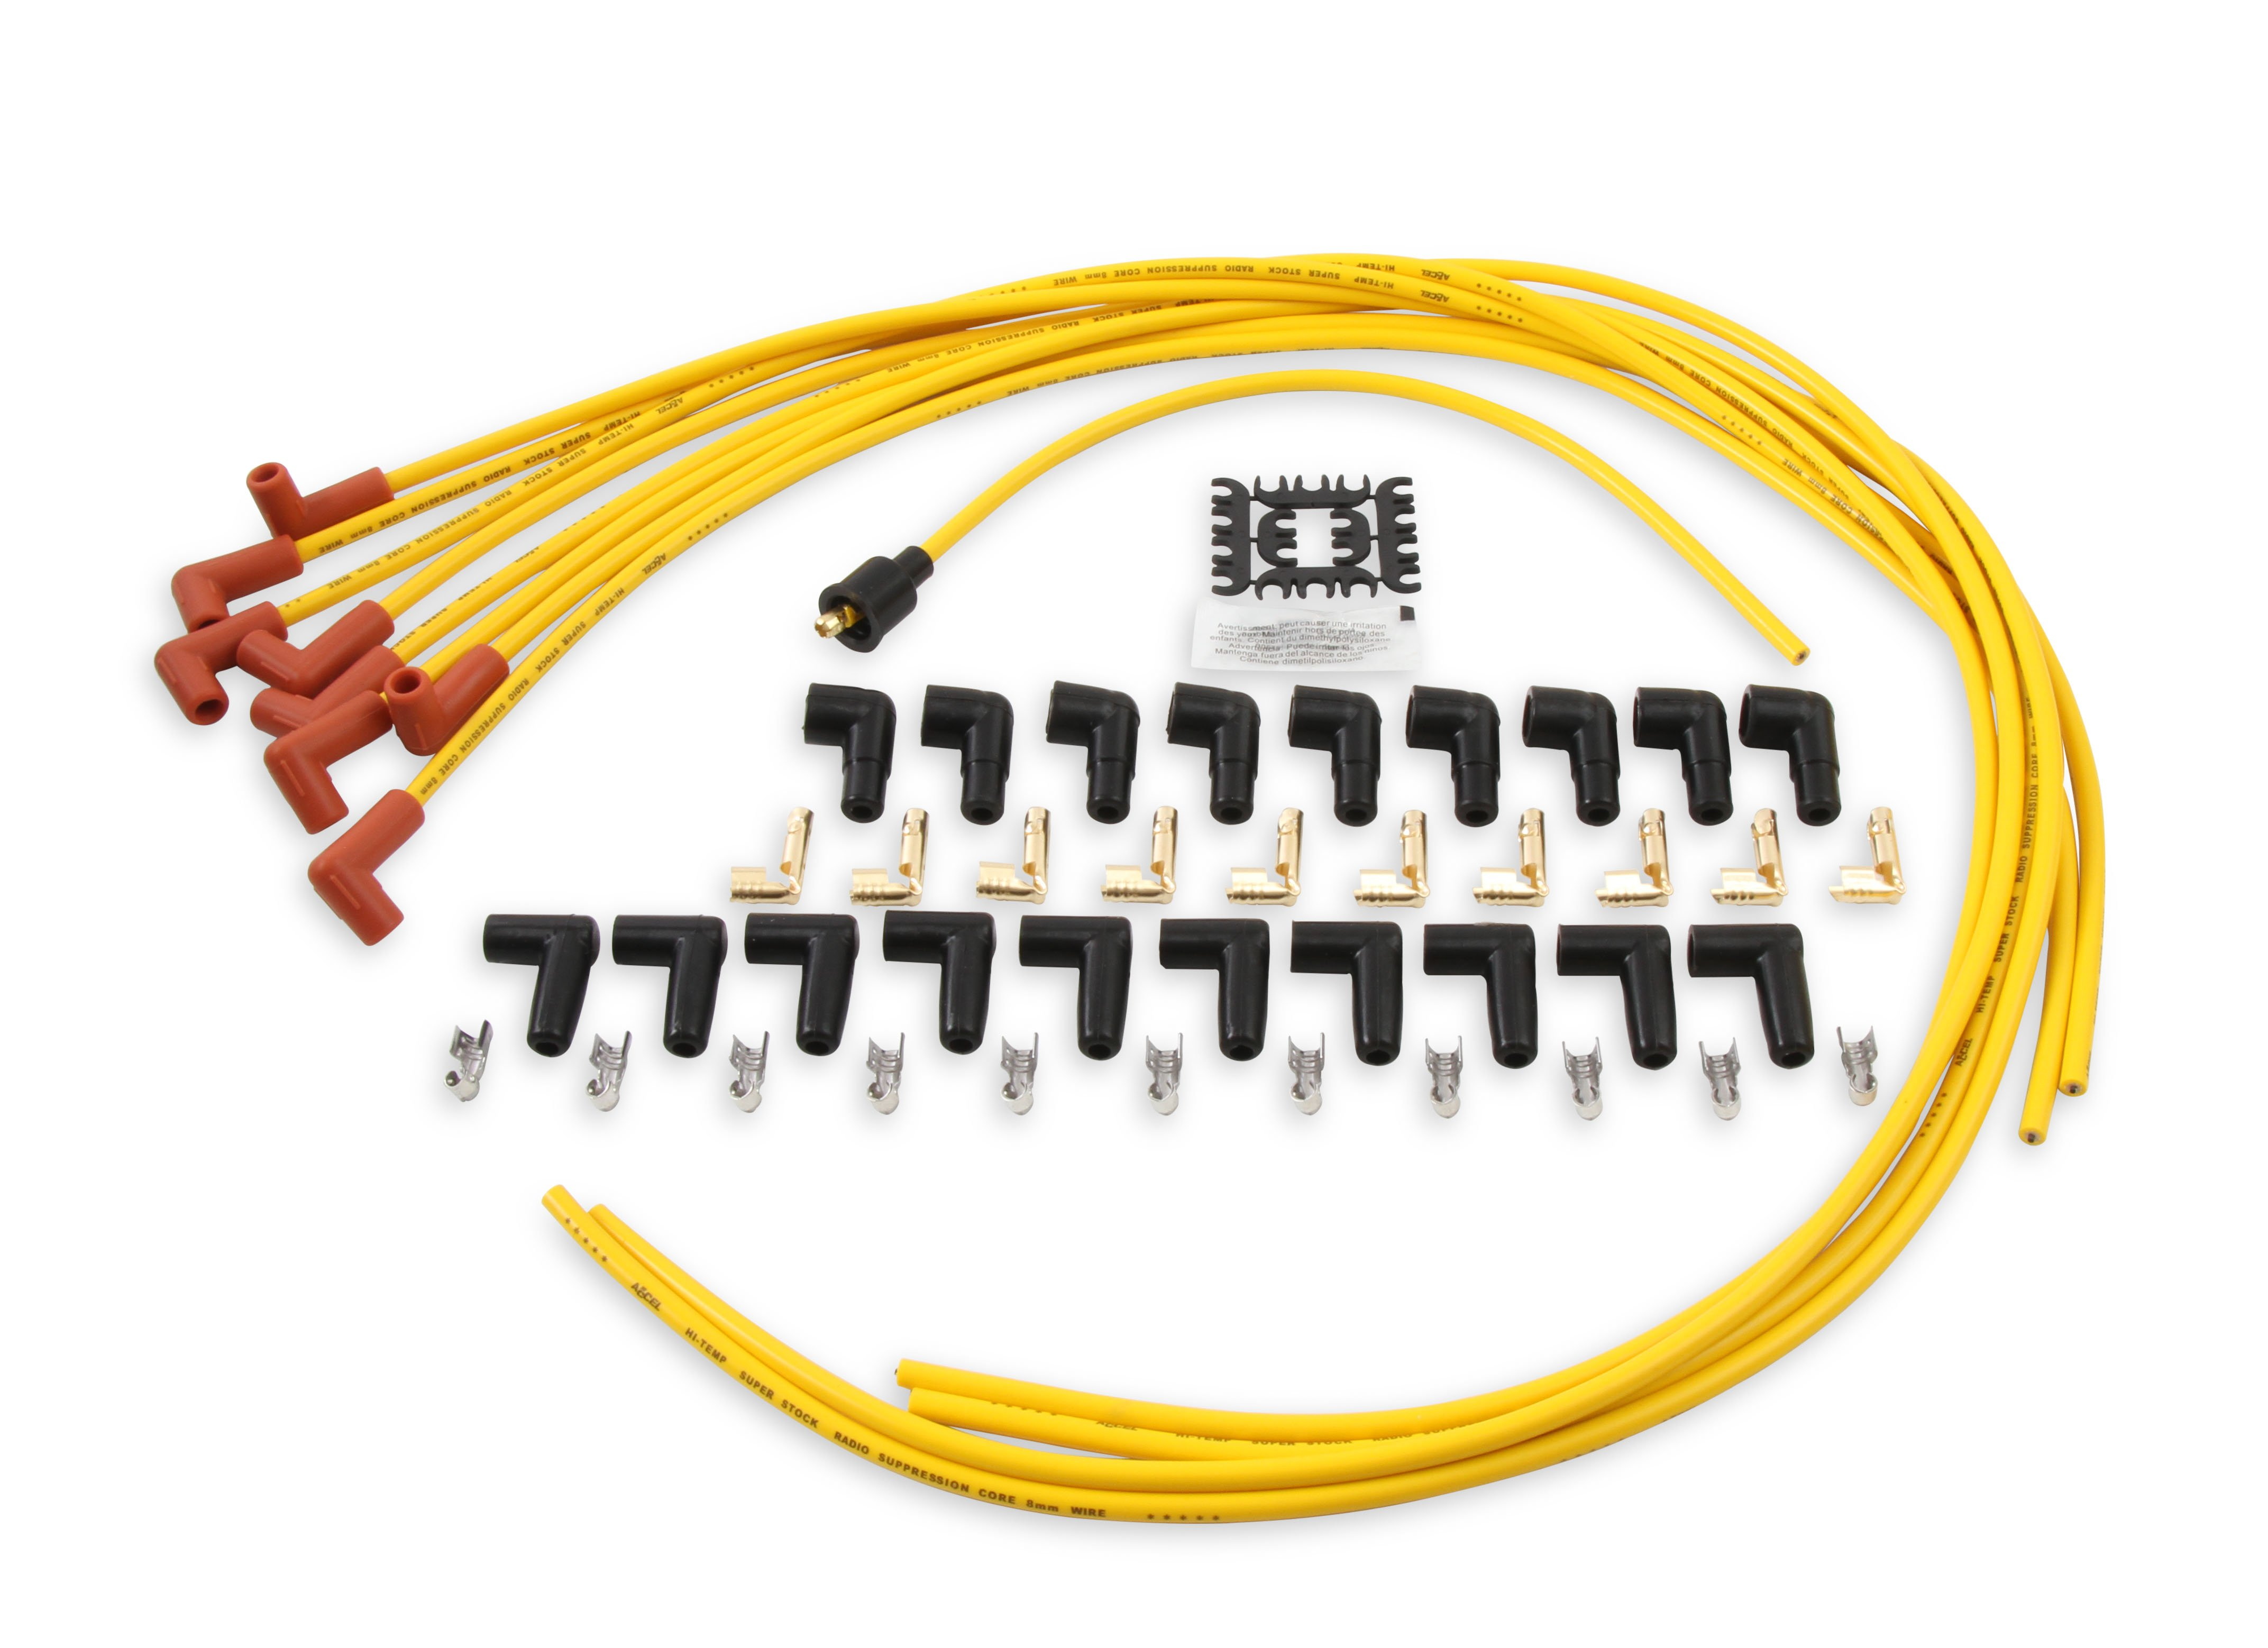 SPARK PLUG WIRES FORD 1965 1966 1967 1968 1970 1971 1972 1973 1974 V8 SILICONE